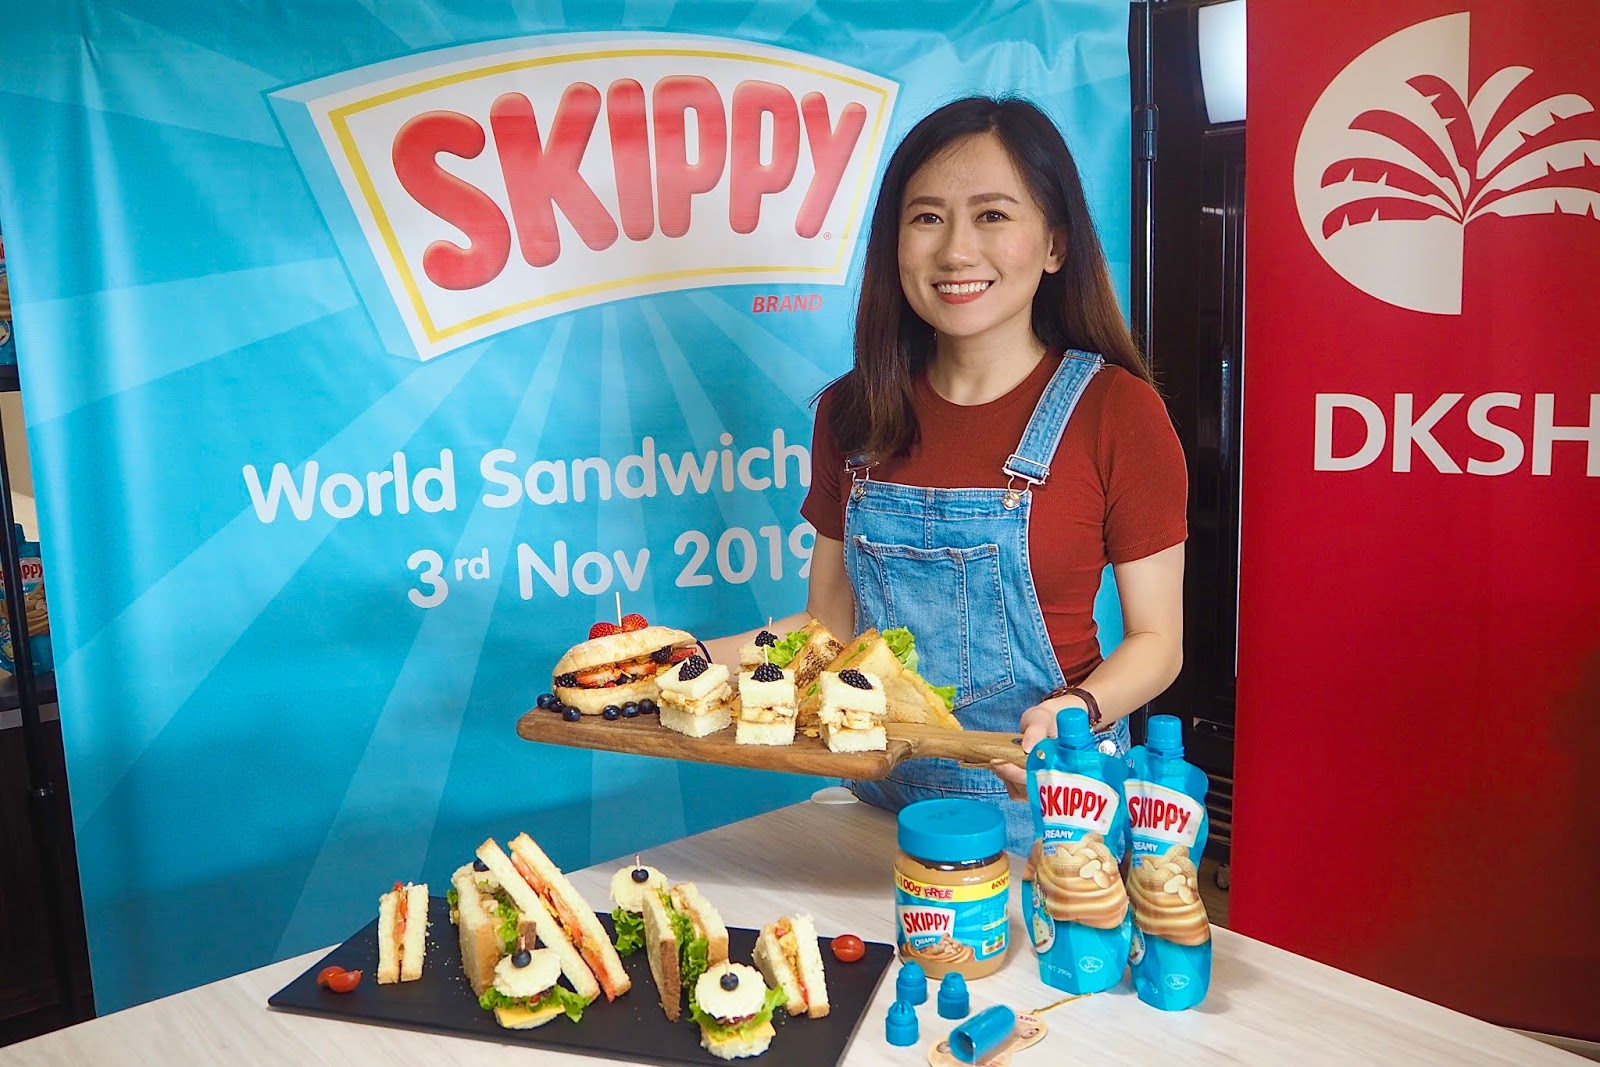 [EVENT] DKSH spreads fun with Skippy on the World Sandwich Day!